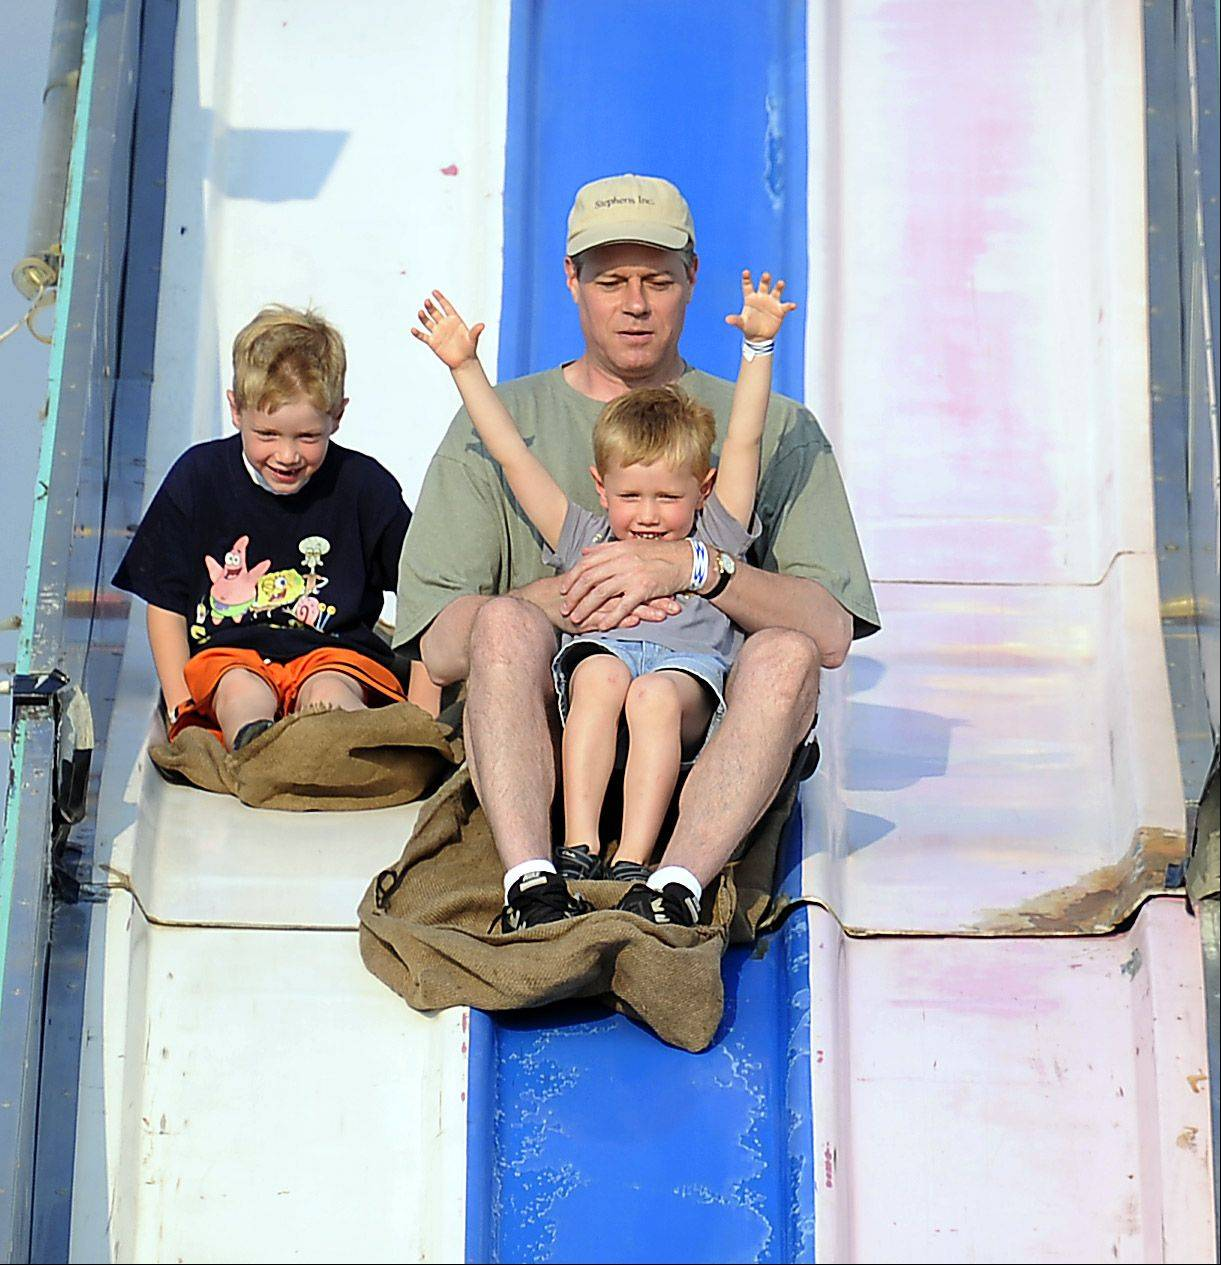 Dan VandeVelde and his sons Eric, 4, and Alex, 6, formerly of Hoffman Estates, hit the giant slide at the Northwest Fourth-Fest in Hoffman Estates on Friday.